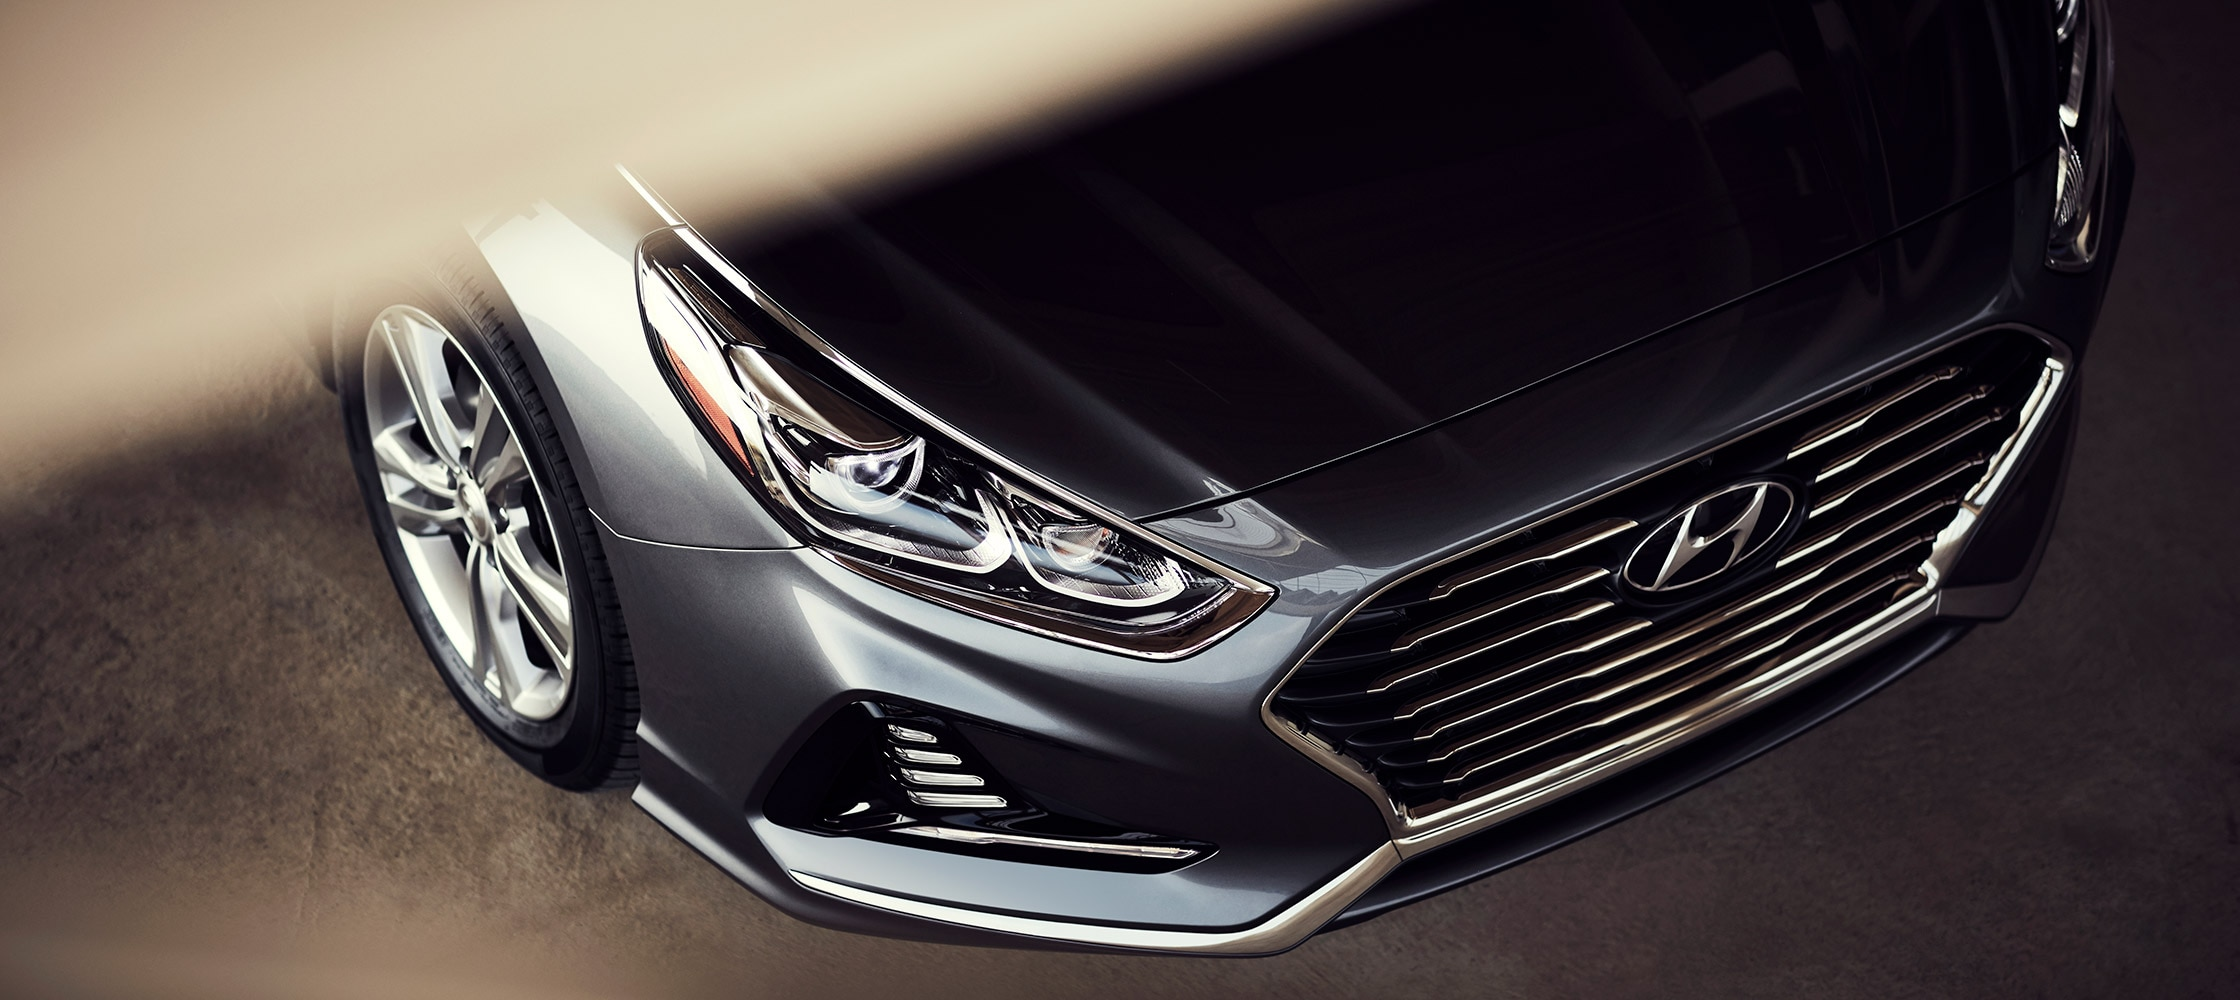 Close up of the Hyundai 2018 Sonata grille in stormy cloud.